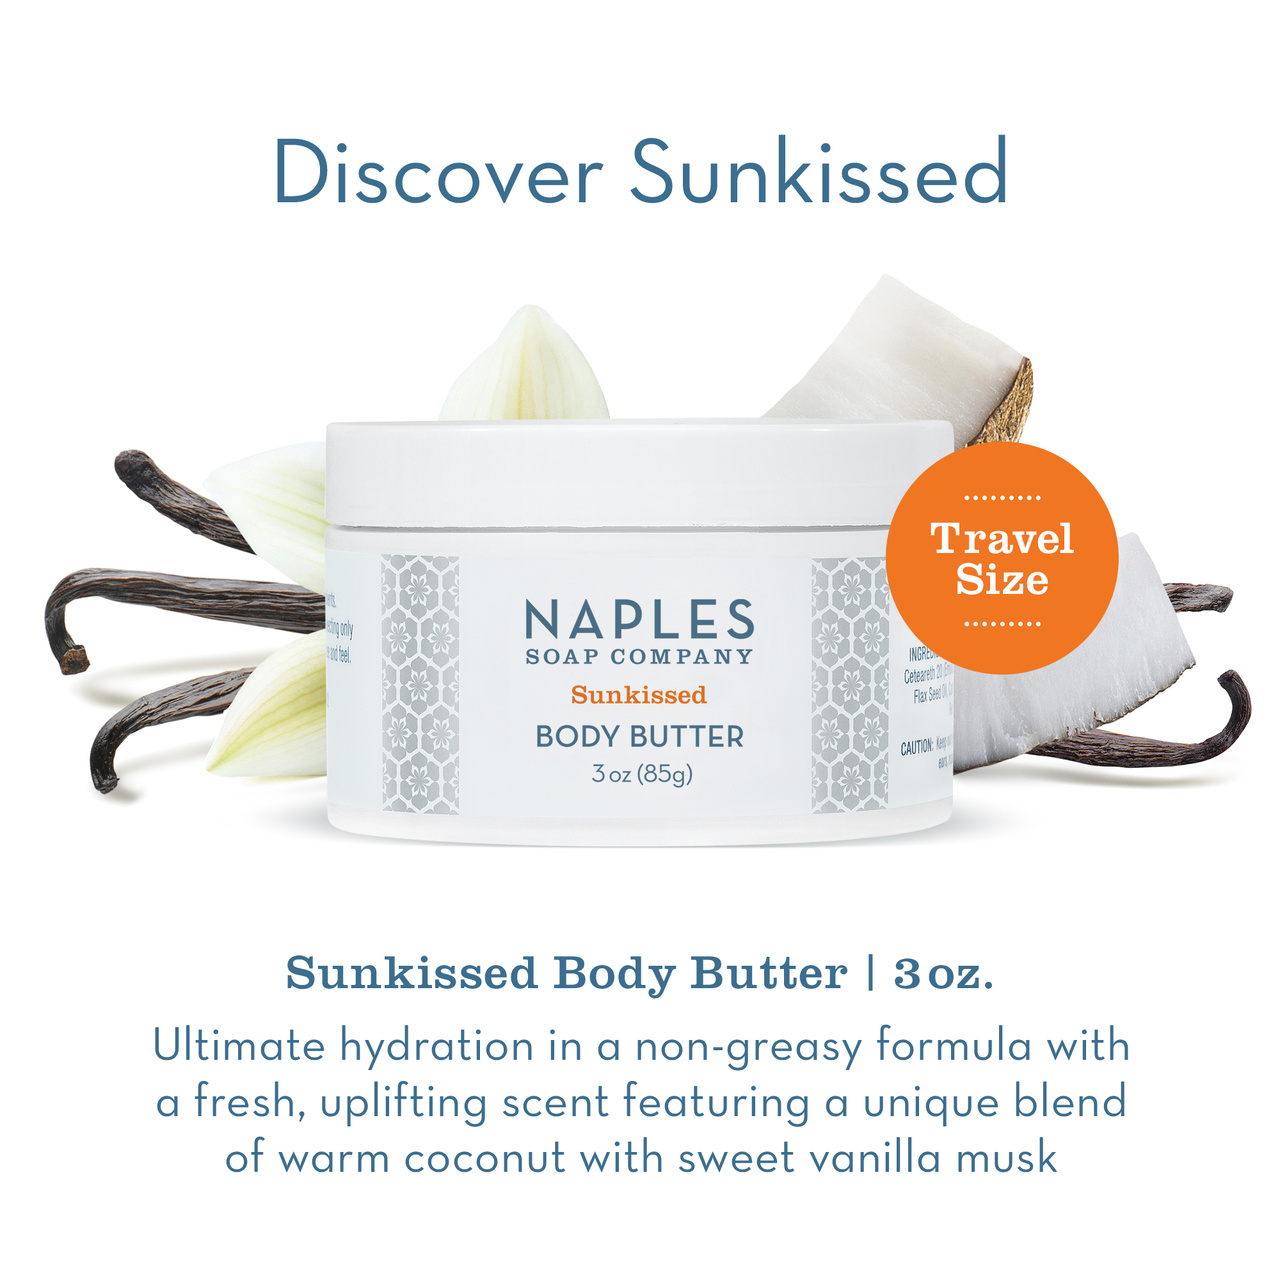 Naples Soap Co. Sunkissed Body Butter 3 oz